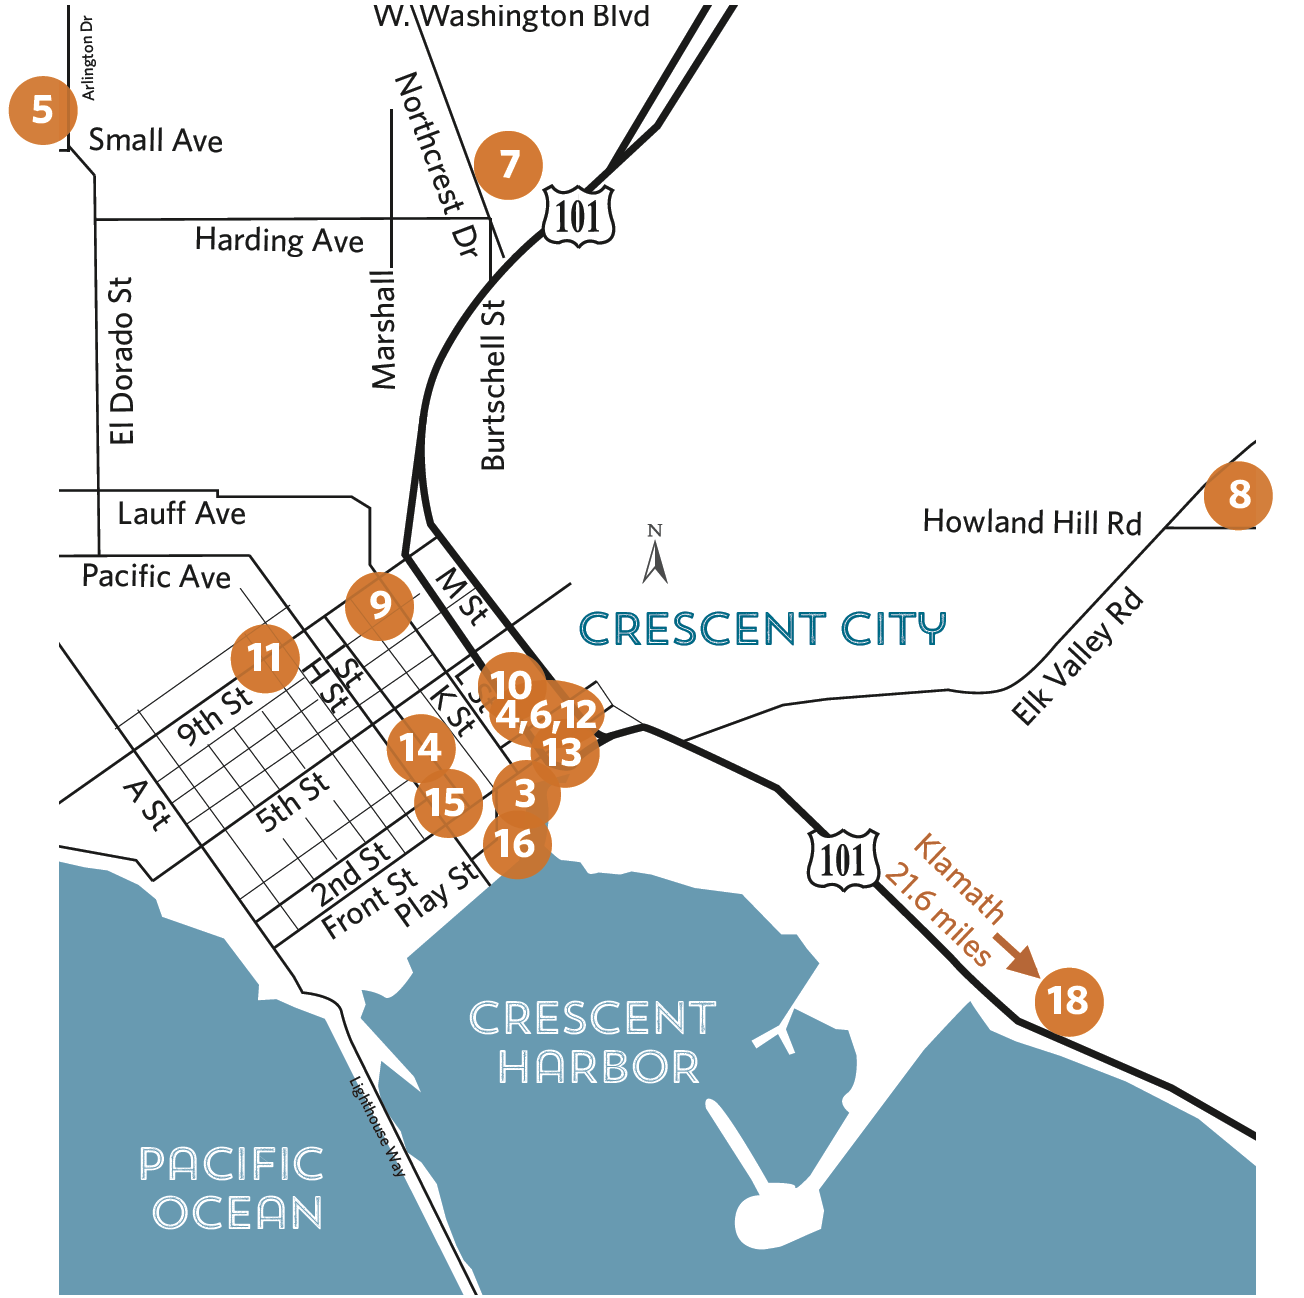 Overview map of locations - Crescent City